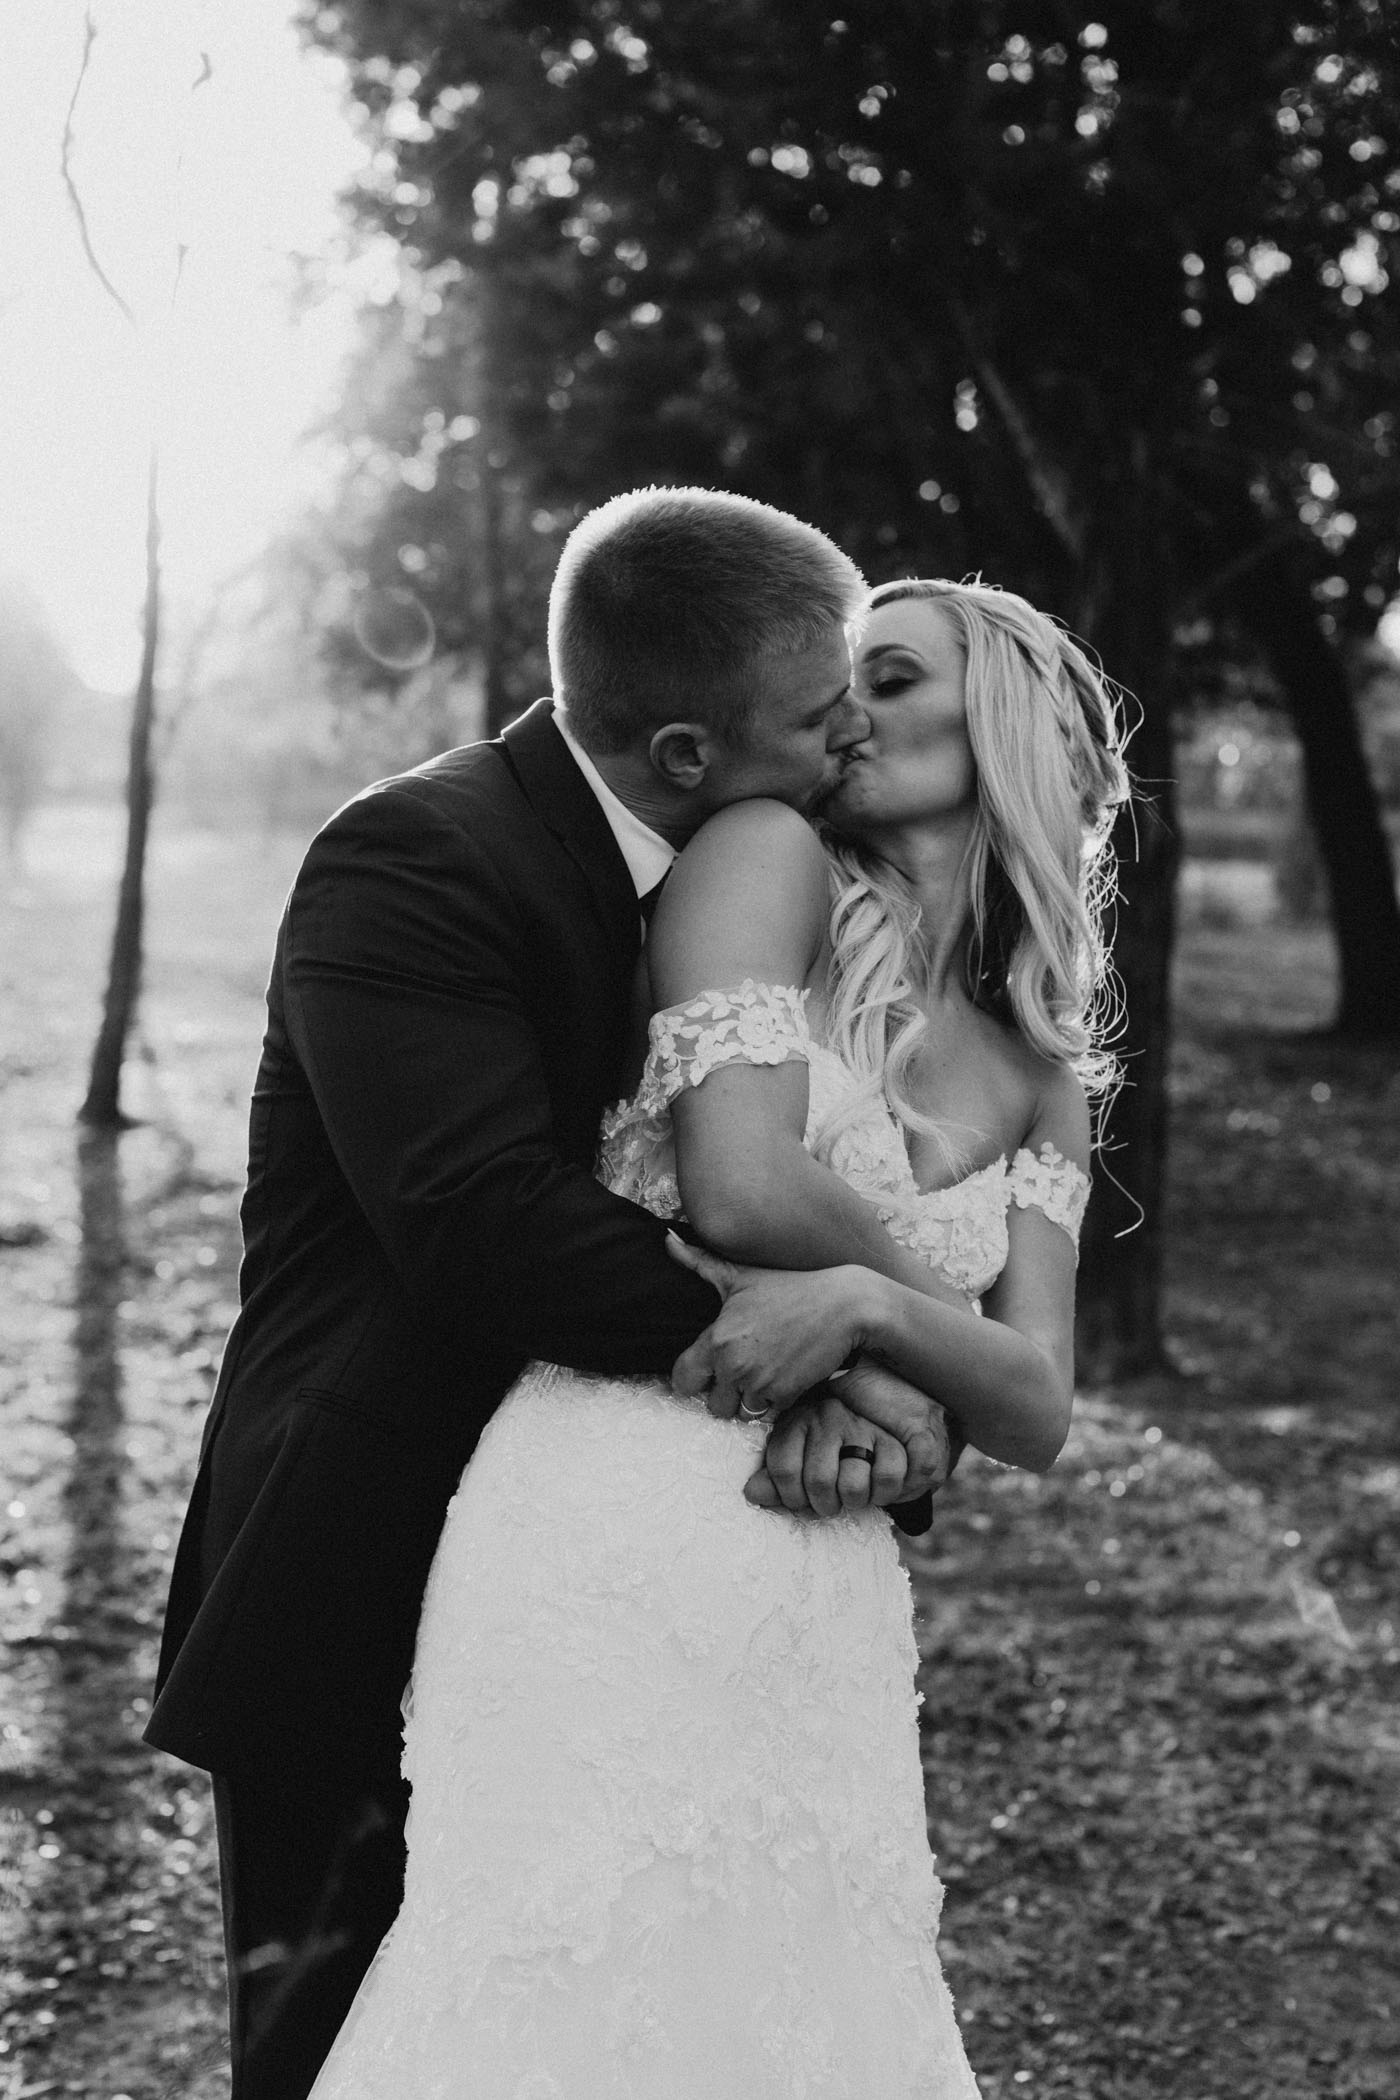 black and white photo of bride and groom kissing at golden hour on outdoor wedding day